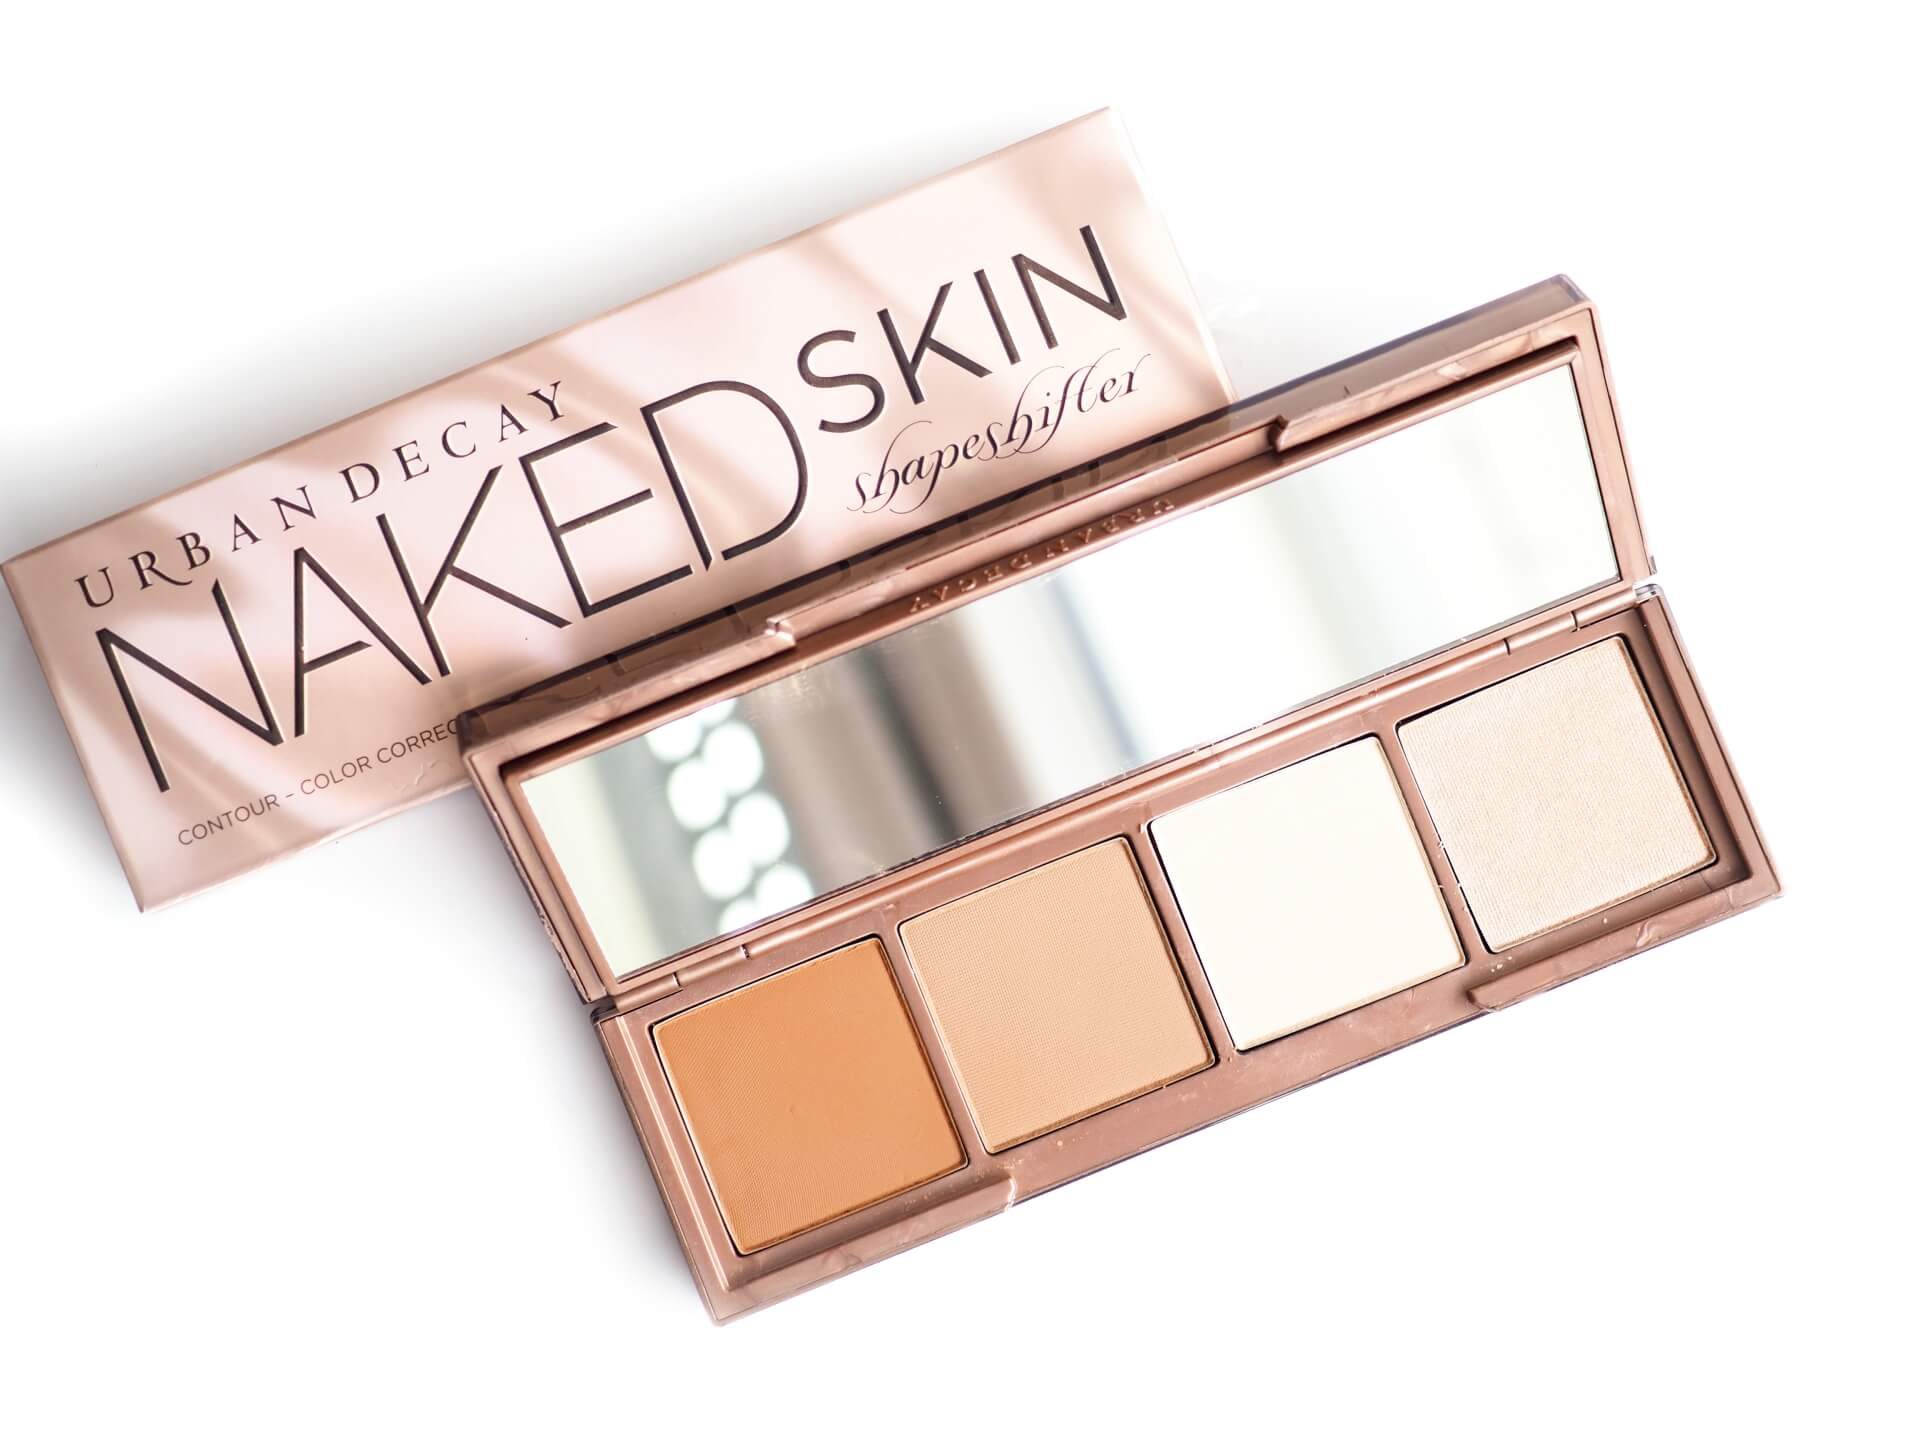 Naked Skin Shapeshifter Light Medium